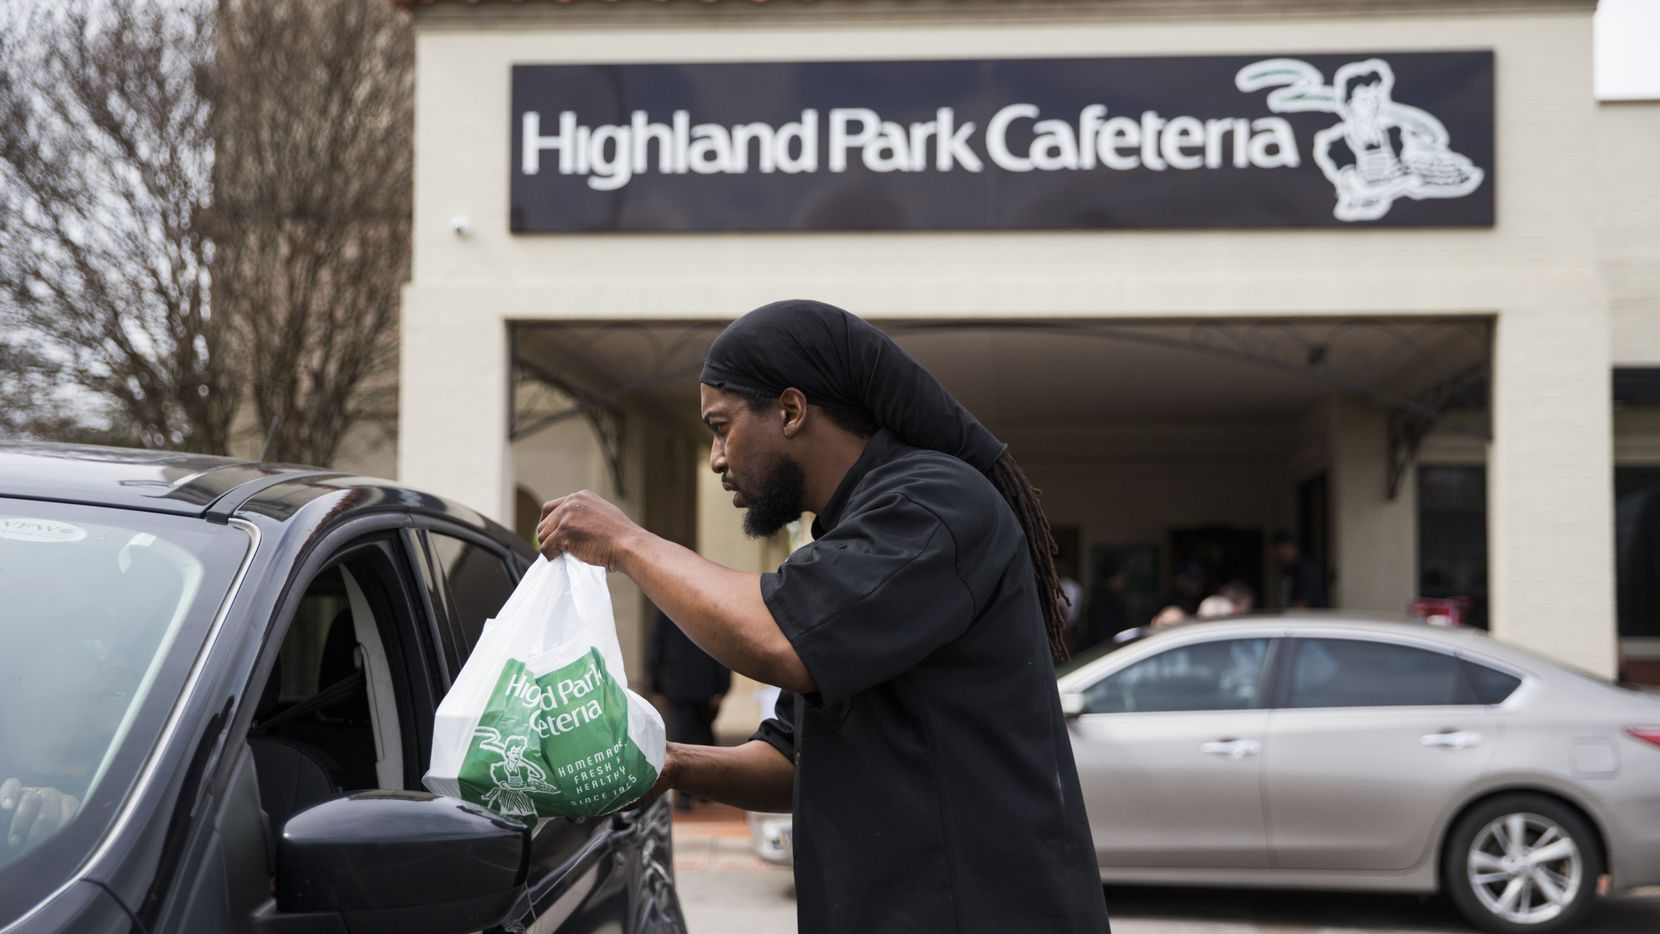 Executive Chef Johnny Howard delivers a meal to a driver outside Highland Park Cafeteria on Wednesday, March 18, 2020 in Dallas. Employees handed out free meals outside the restaurant after Dallas restaurants and bars were closed due to the spread of COVID-19.